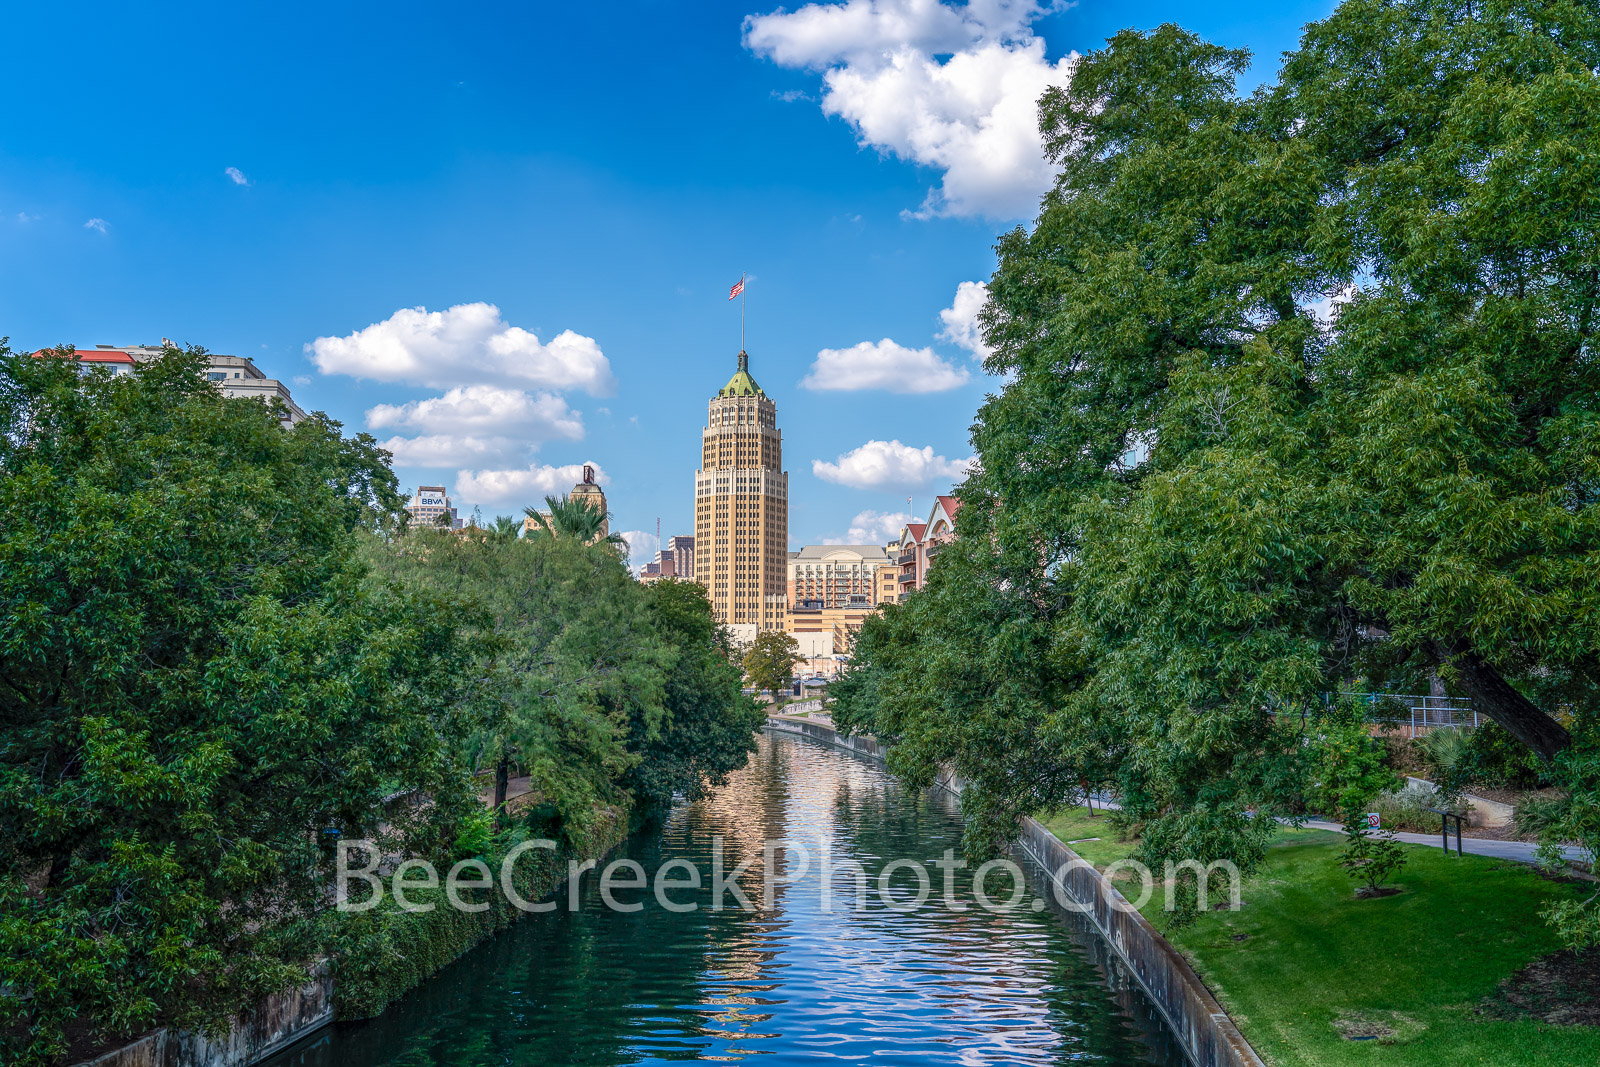 San Antonio Tower Life - San Antonio images on prints, canvas and metal. We capture this view of the Tower Life building looking...